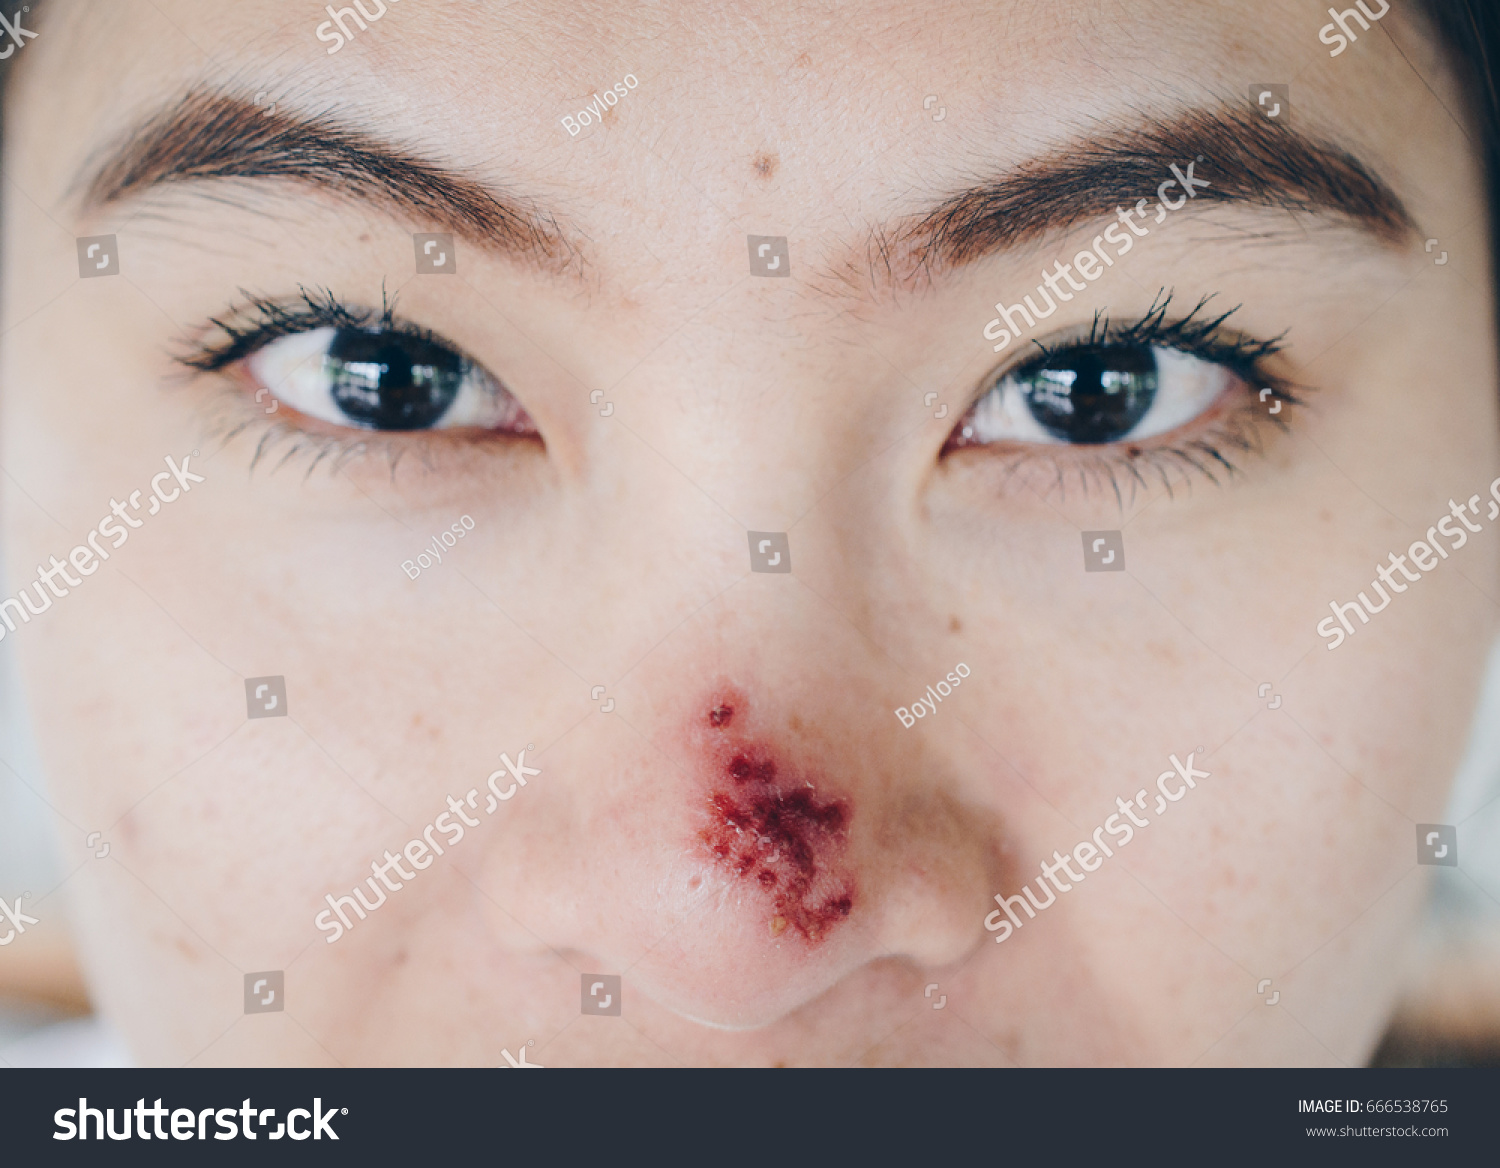 How To Treat Eye Herpes Naturally